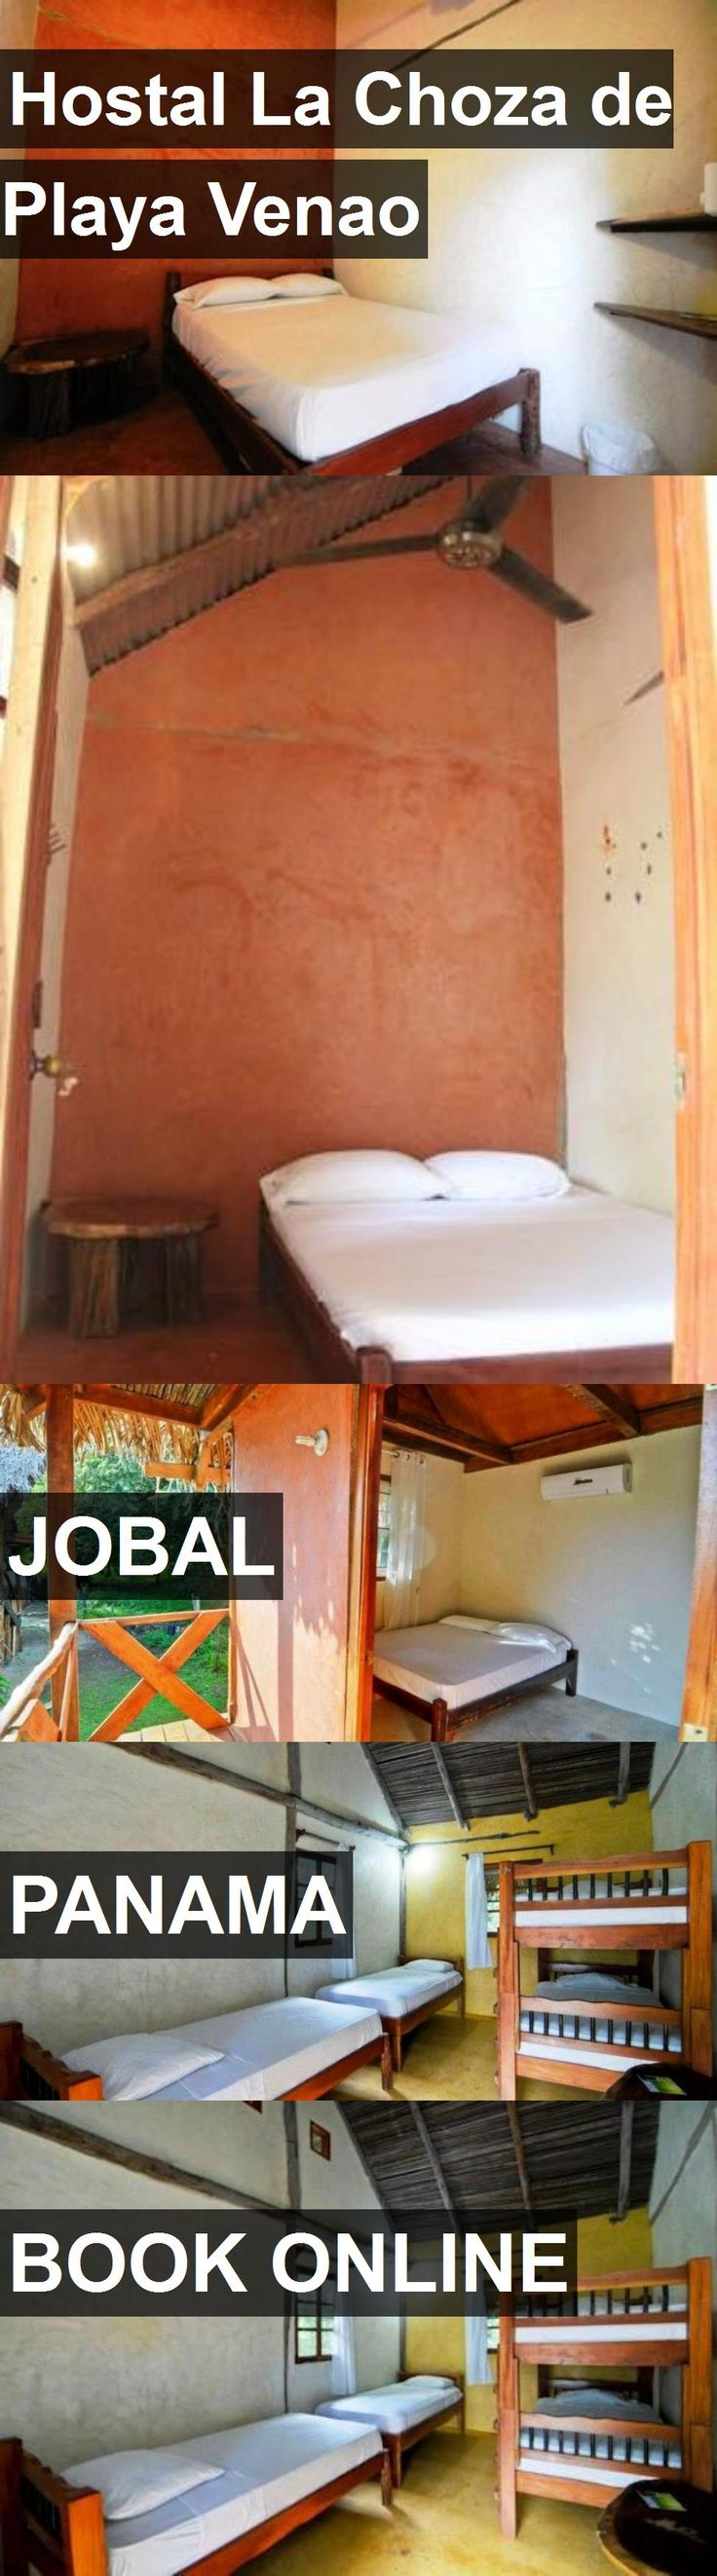 Hotel Hostal La Choza de Playa Venao in Jobal, Panama. For more information, photos, reviews and best prices please follow the link. #Panama #Jobal #travel #vacation #hotel